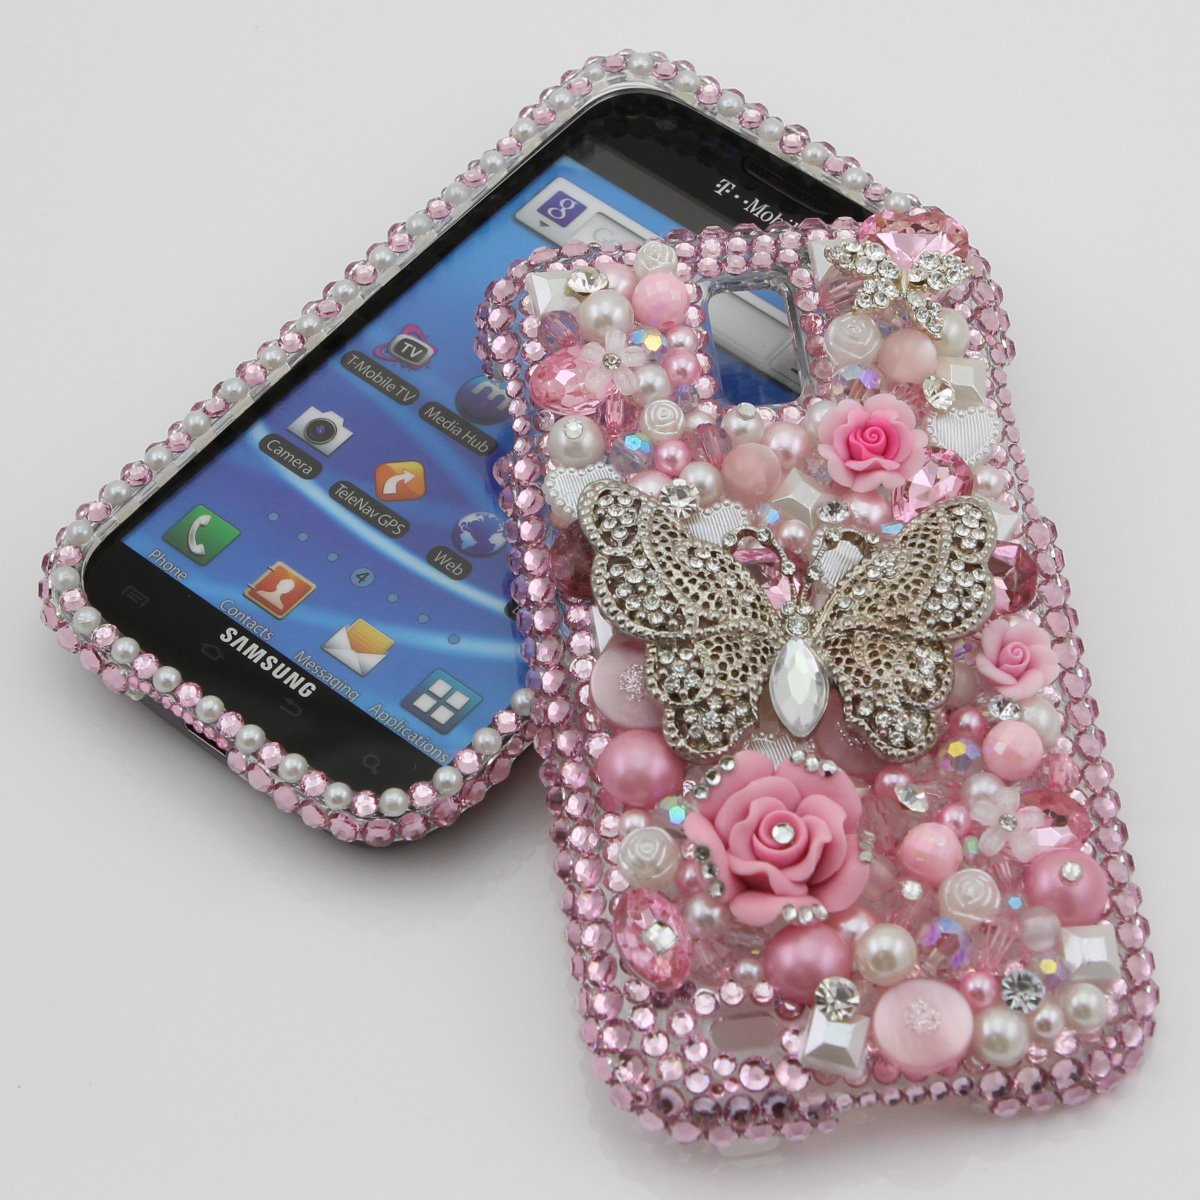 3D Swarovski Crystal Diamond Bling Silver Butterfly Design Case Cover for Samsung Galaxy S2 S 2 II T-Mobile SGH-T989 - Pink